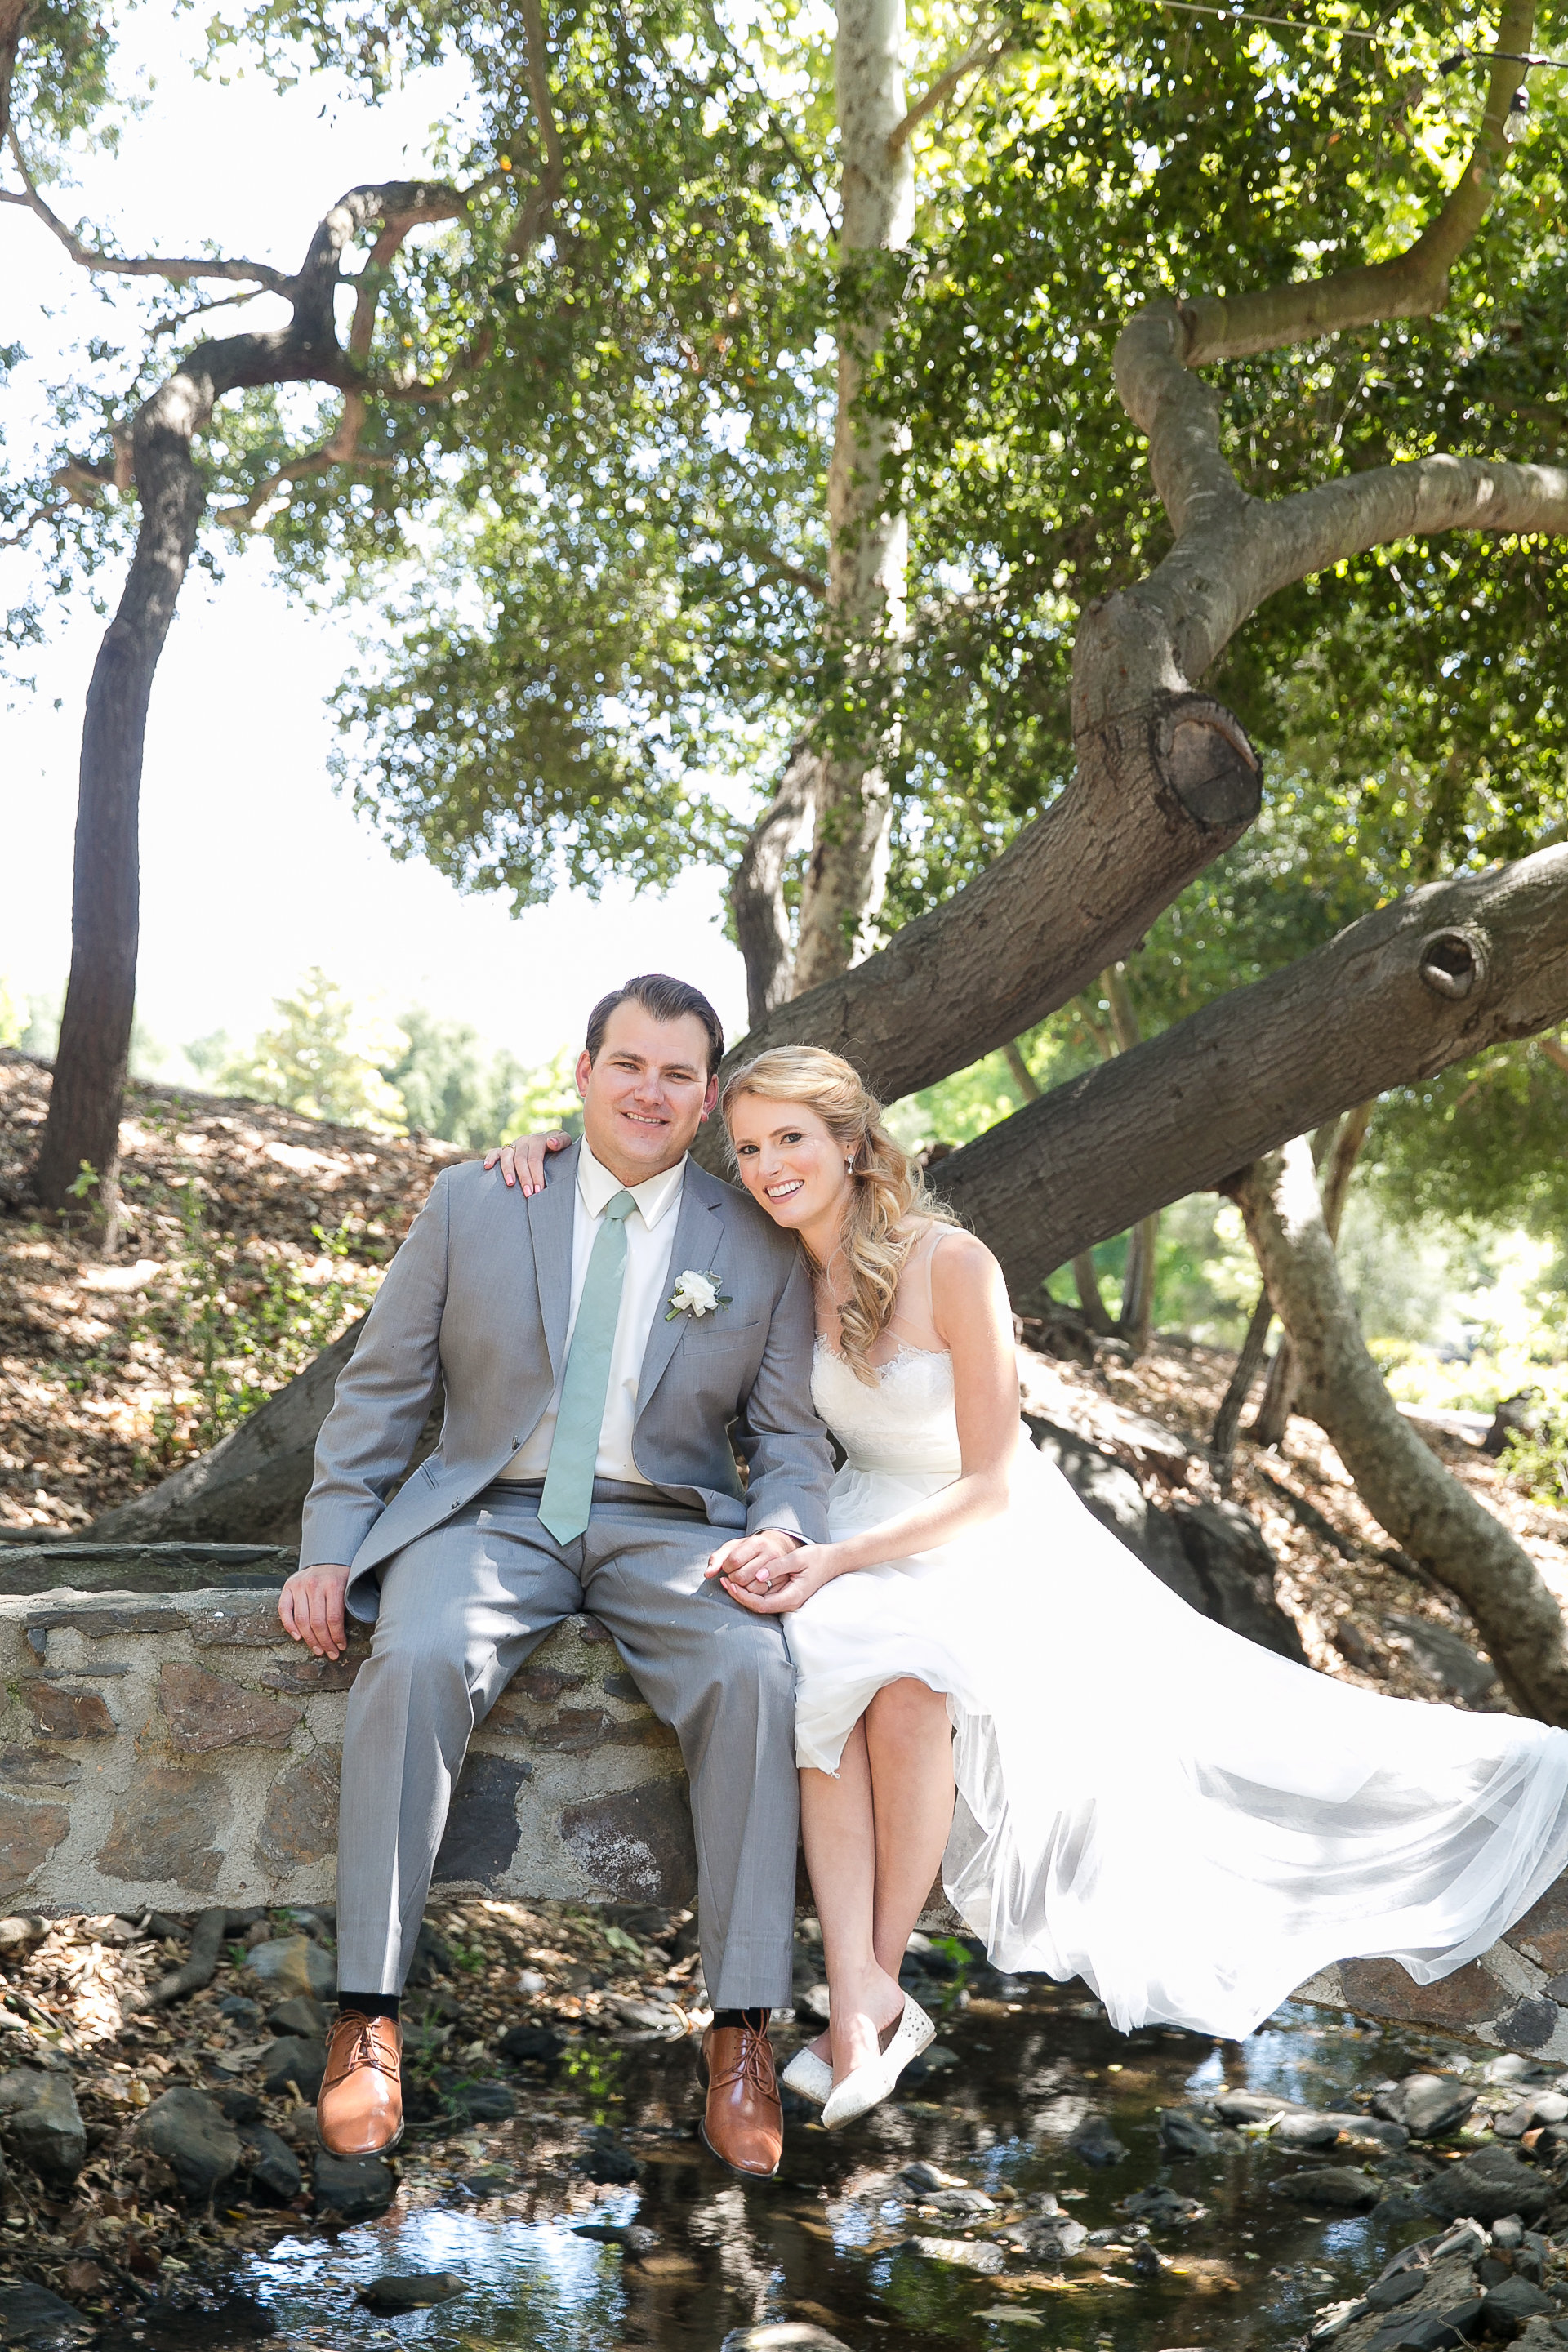 Leah Marie Photography | Michelle Garibay Events | Temecula Private Estate Wedding